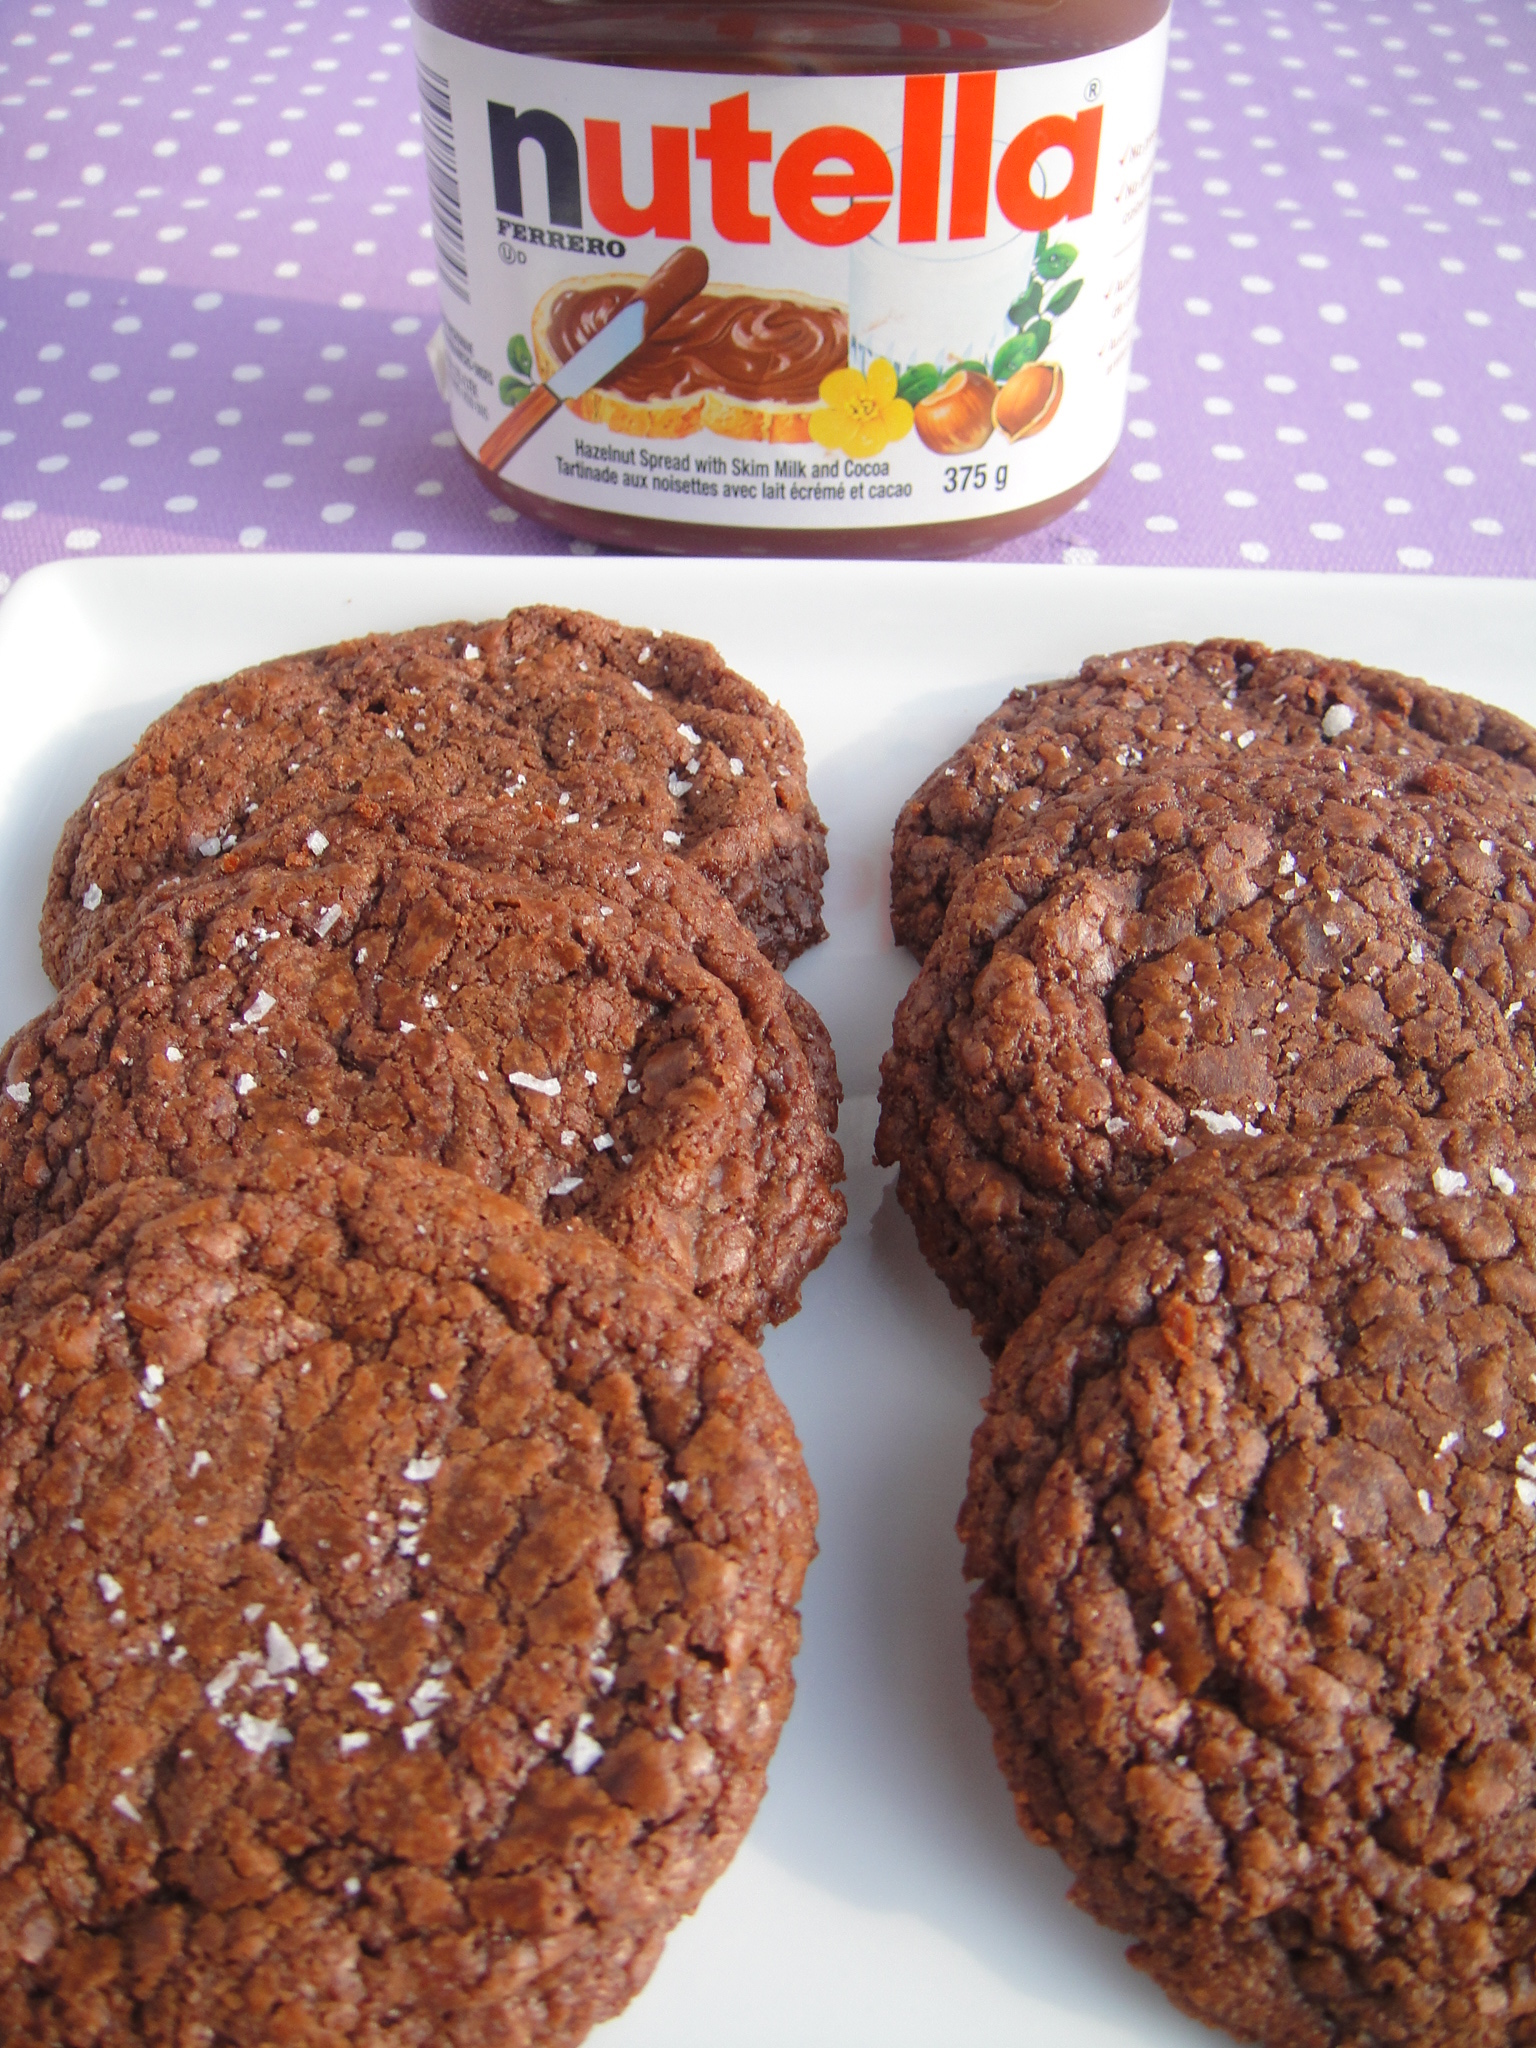 Easy 5 Ingredient Nutella Cookies with Sea Salt (Gluten Free)